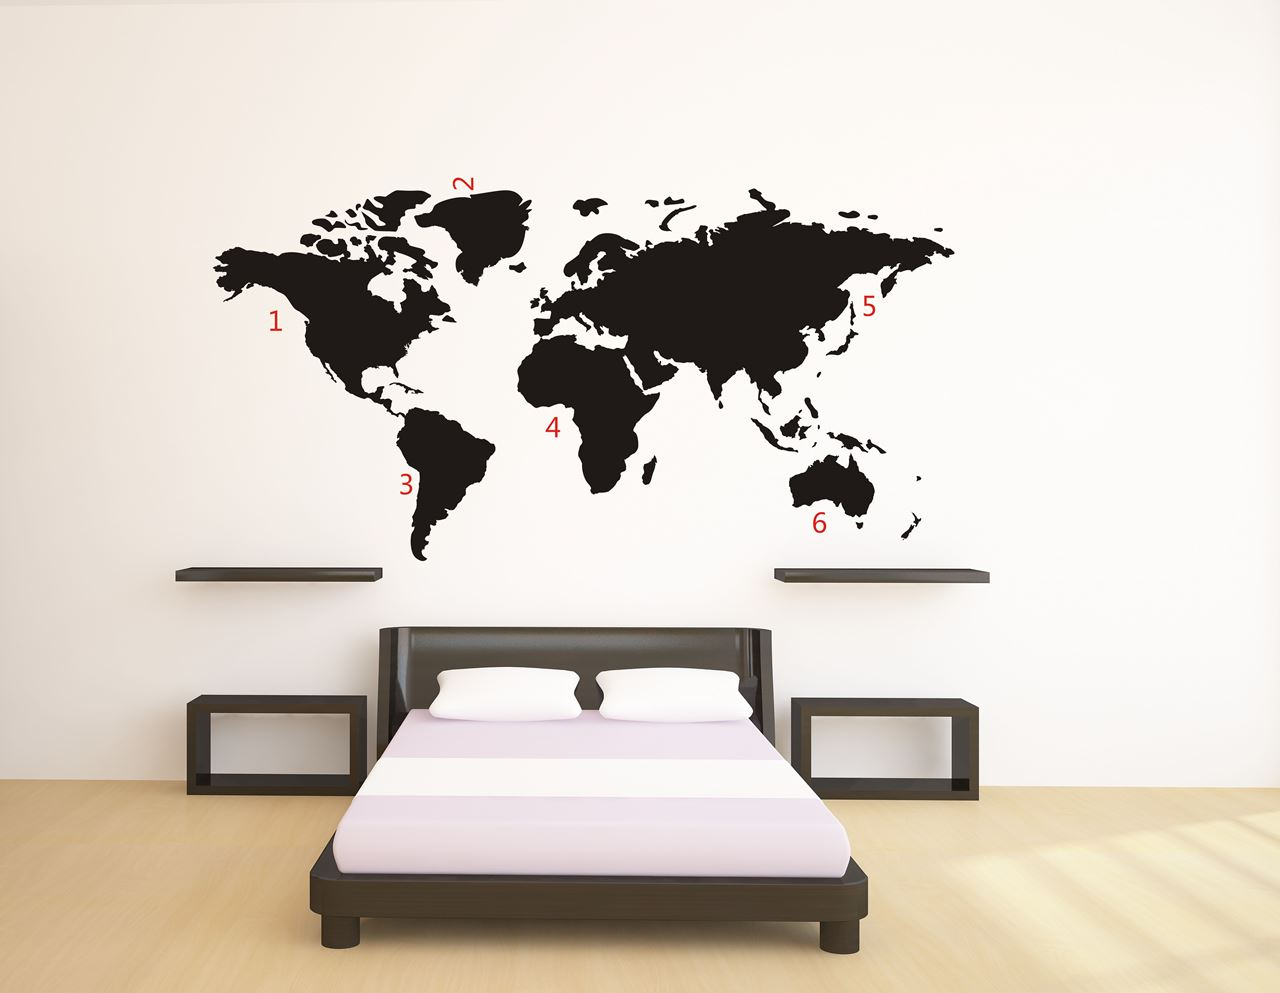 Channeldistribution world map wall sticker black world map wall sticker black gumiabroncs Image collections